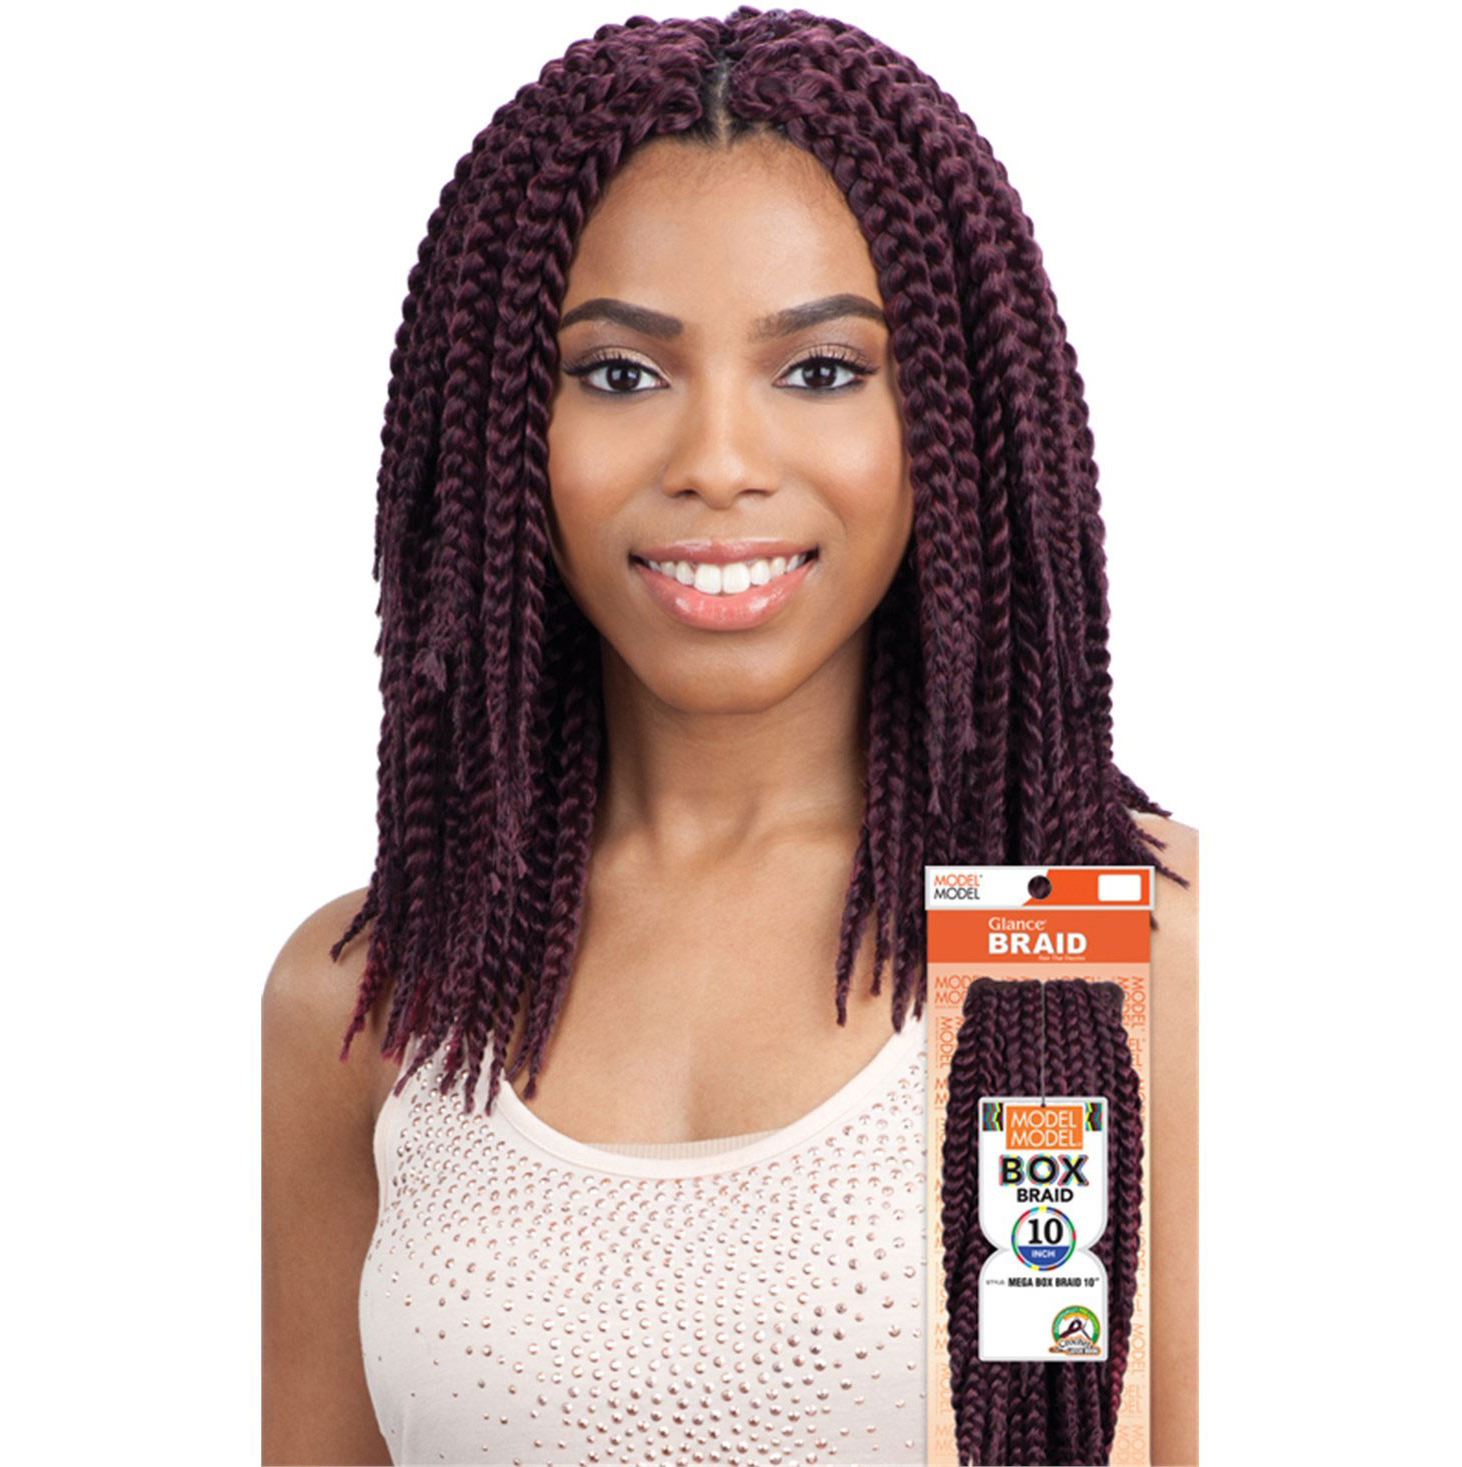 Crochet Hair Model Model : ... > Hair Care & Styling > Hair Extensions & Wigs > Hair Ex...